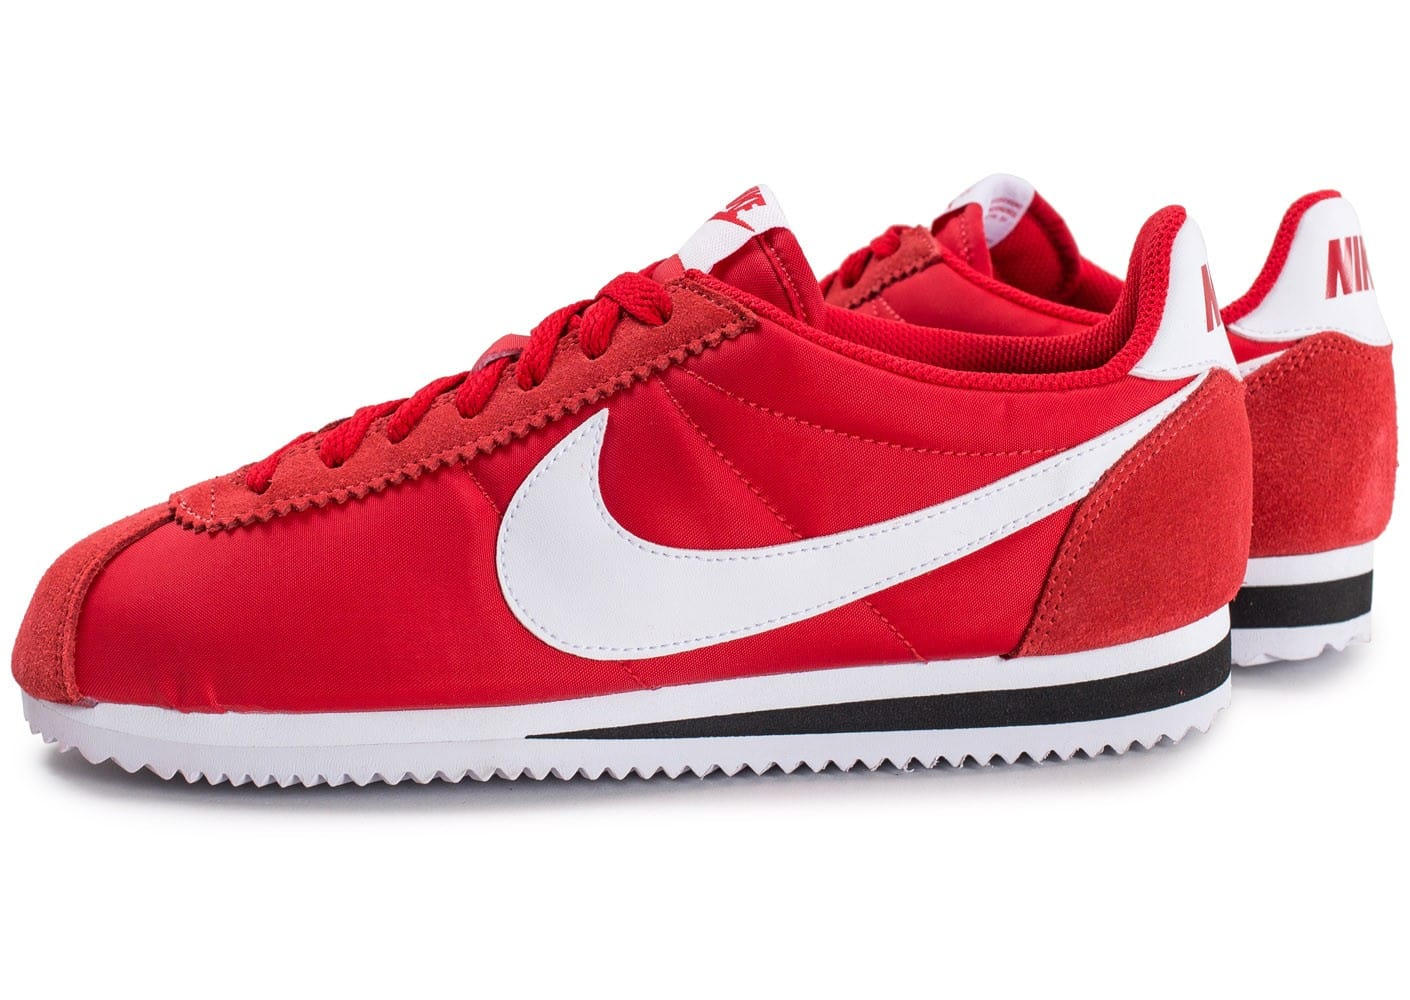 Nike Cortez Nylon rouge Chaussures Baskets homme Chausport